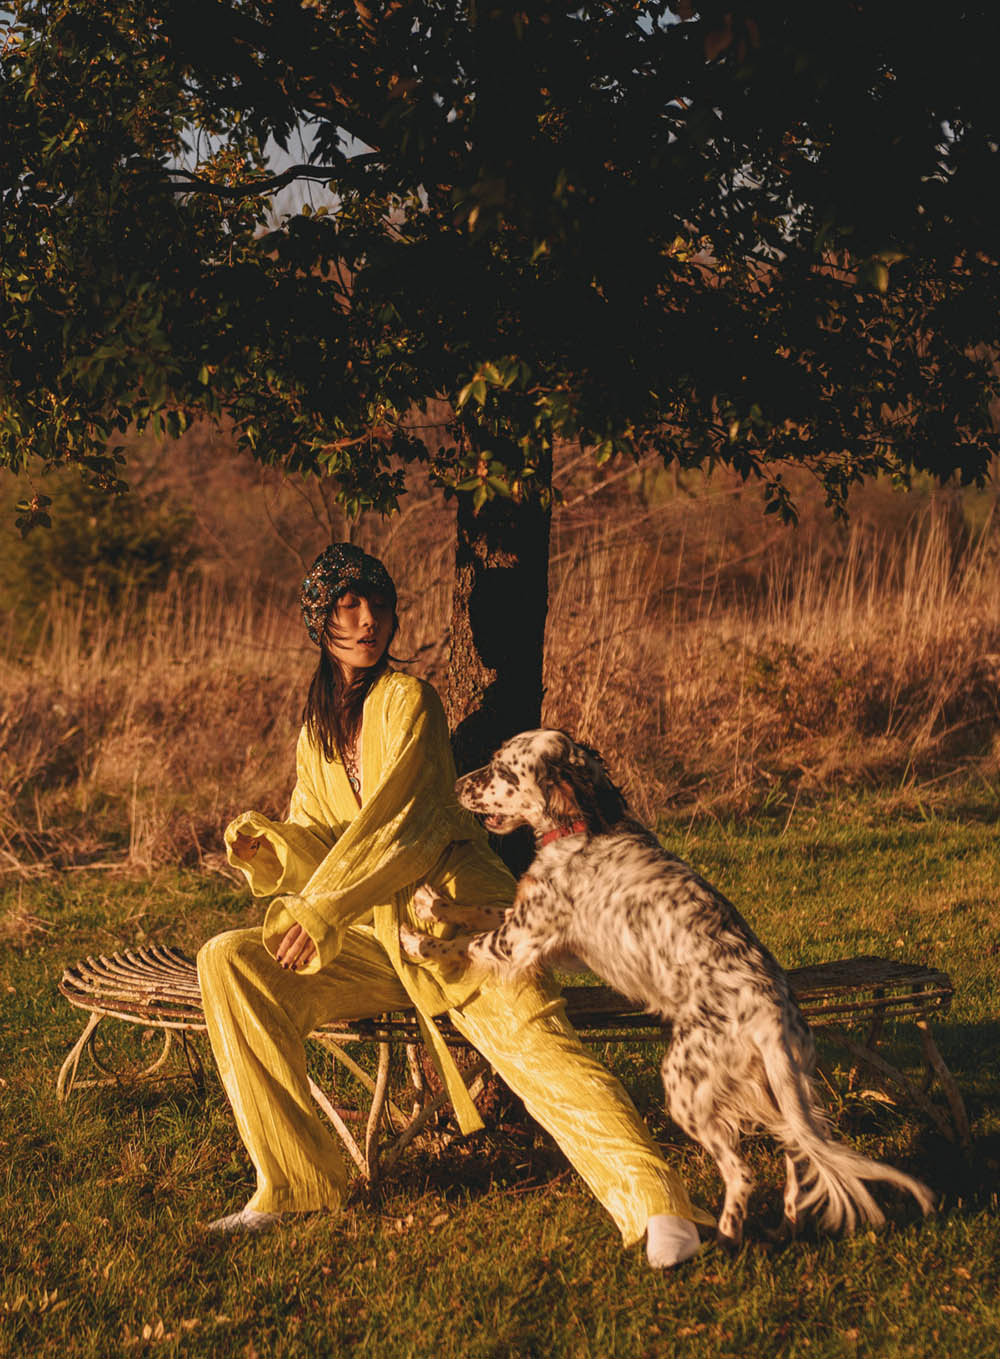 Vaughan Ollier and Yao Shiau by Noémi Ottilia Szabo for Marie Claire US February 2020